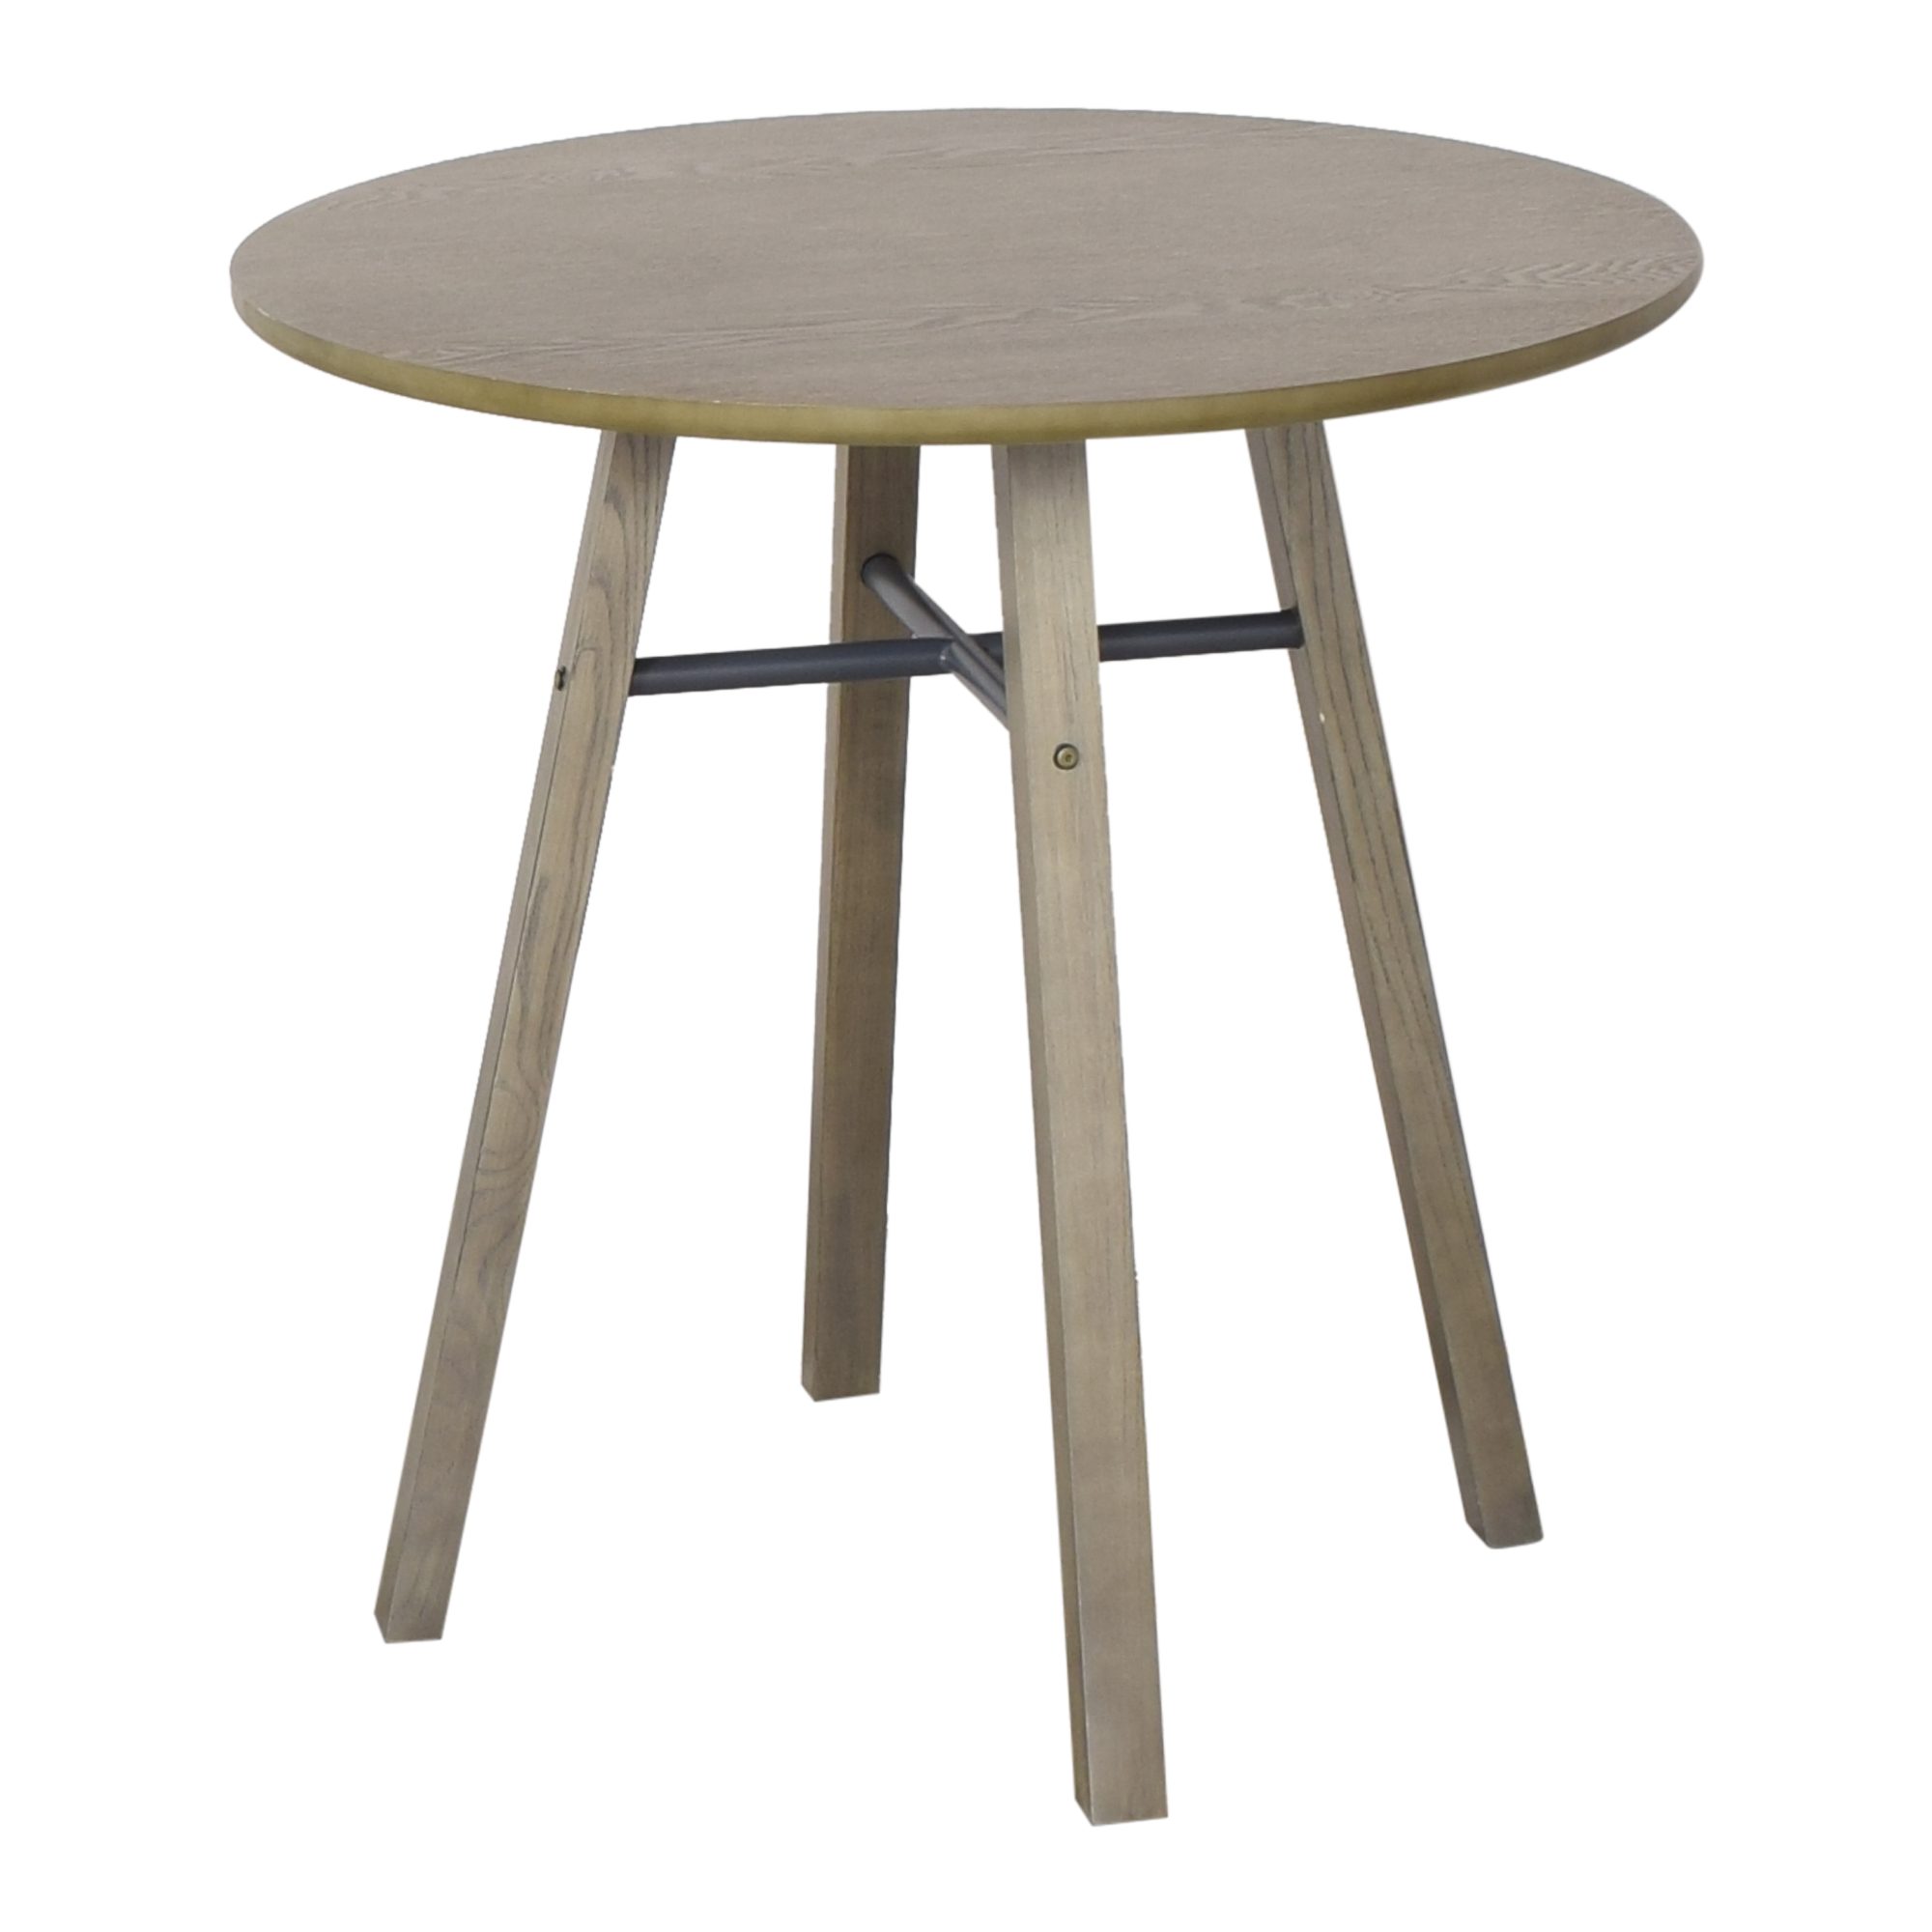 buy Crate & Barrel Bar Height Round Table Crate & Barrel Tables